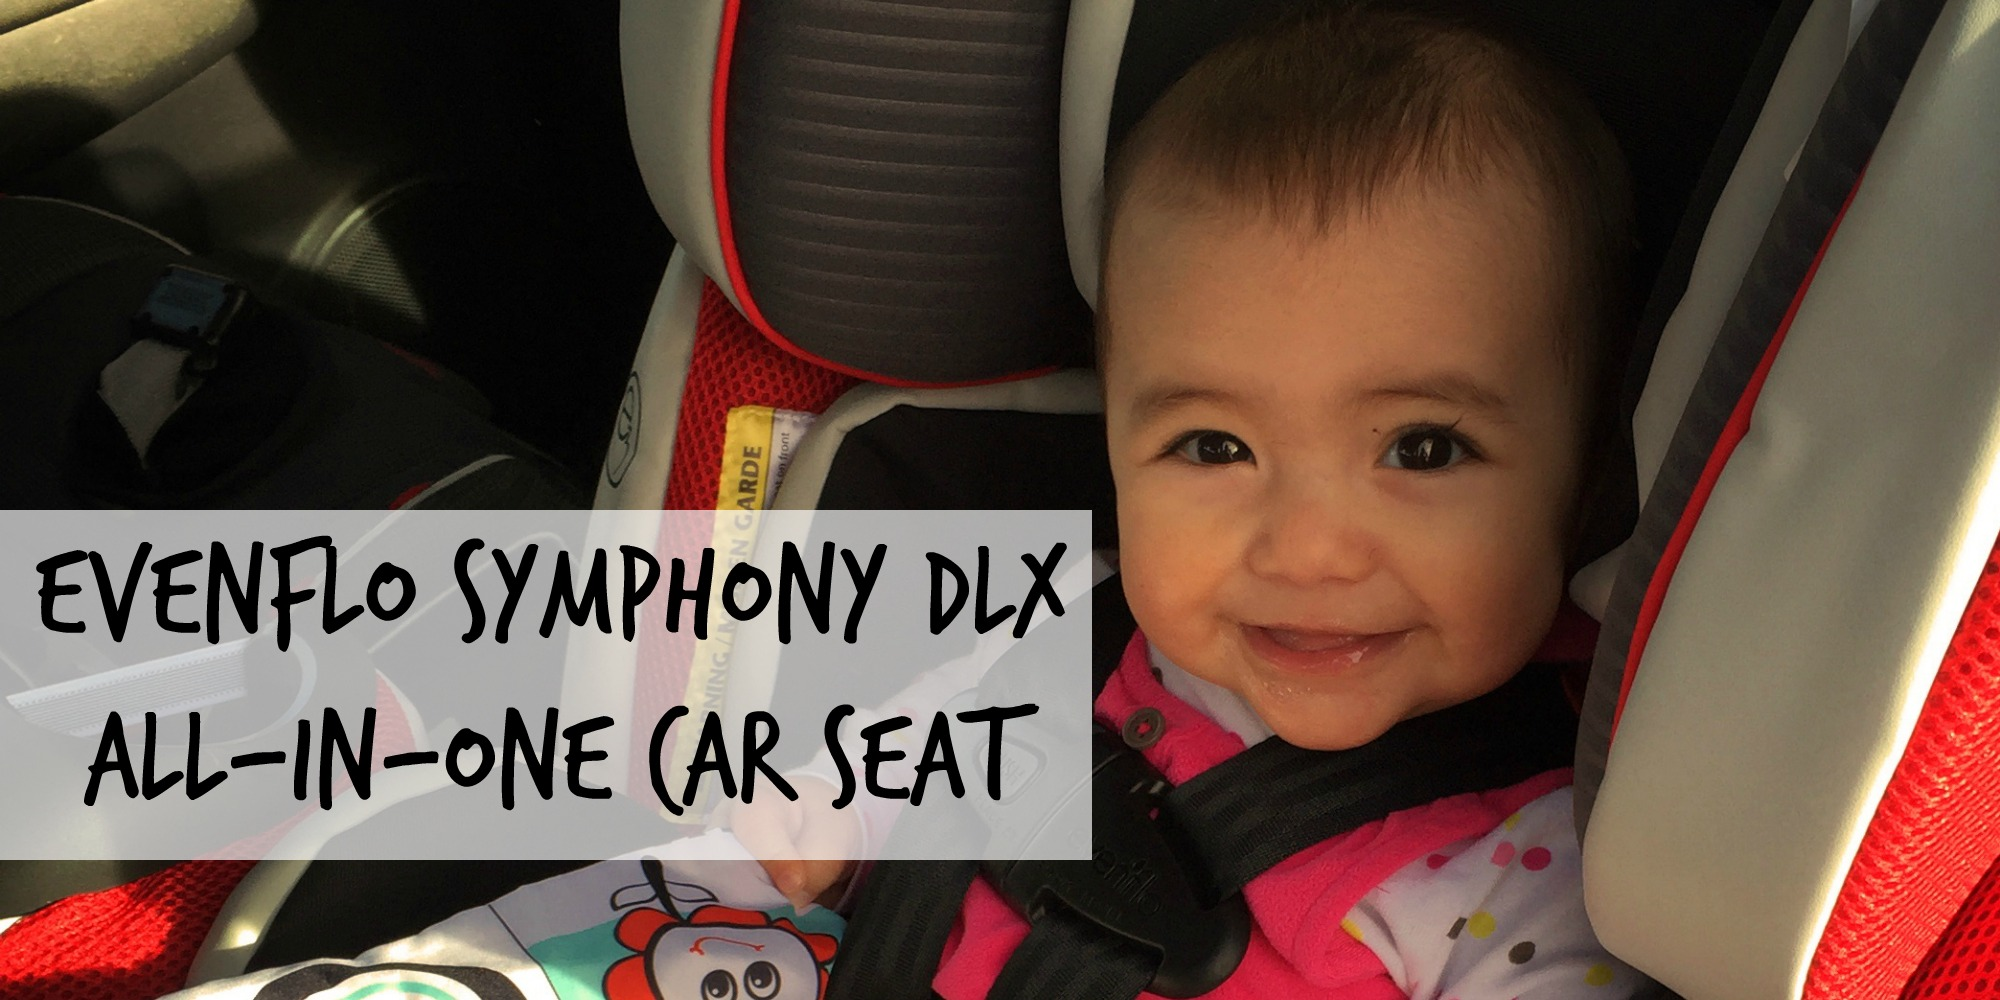 evenflo symphony dlx all in one car seat review. Black Bedroom Furniture Sets. Home Design Ideas